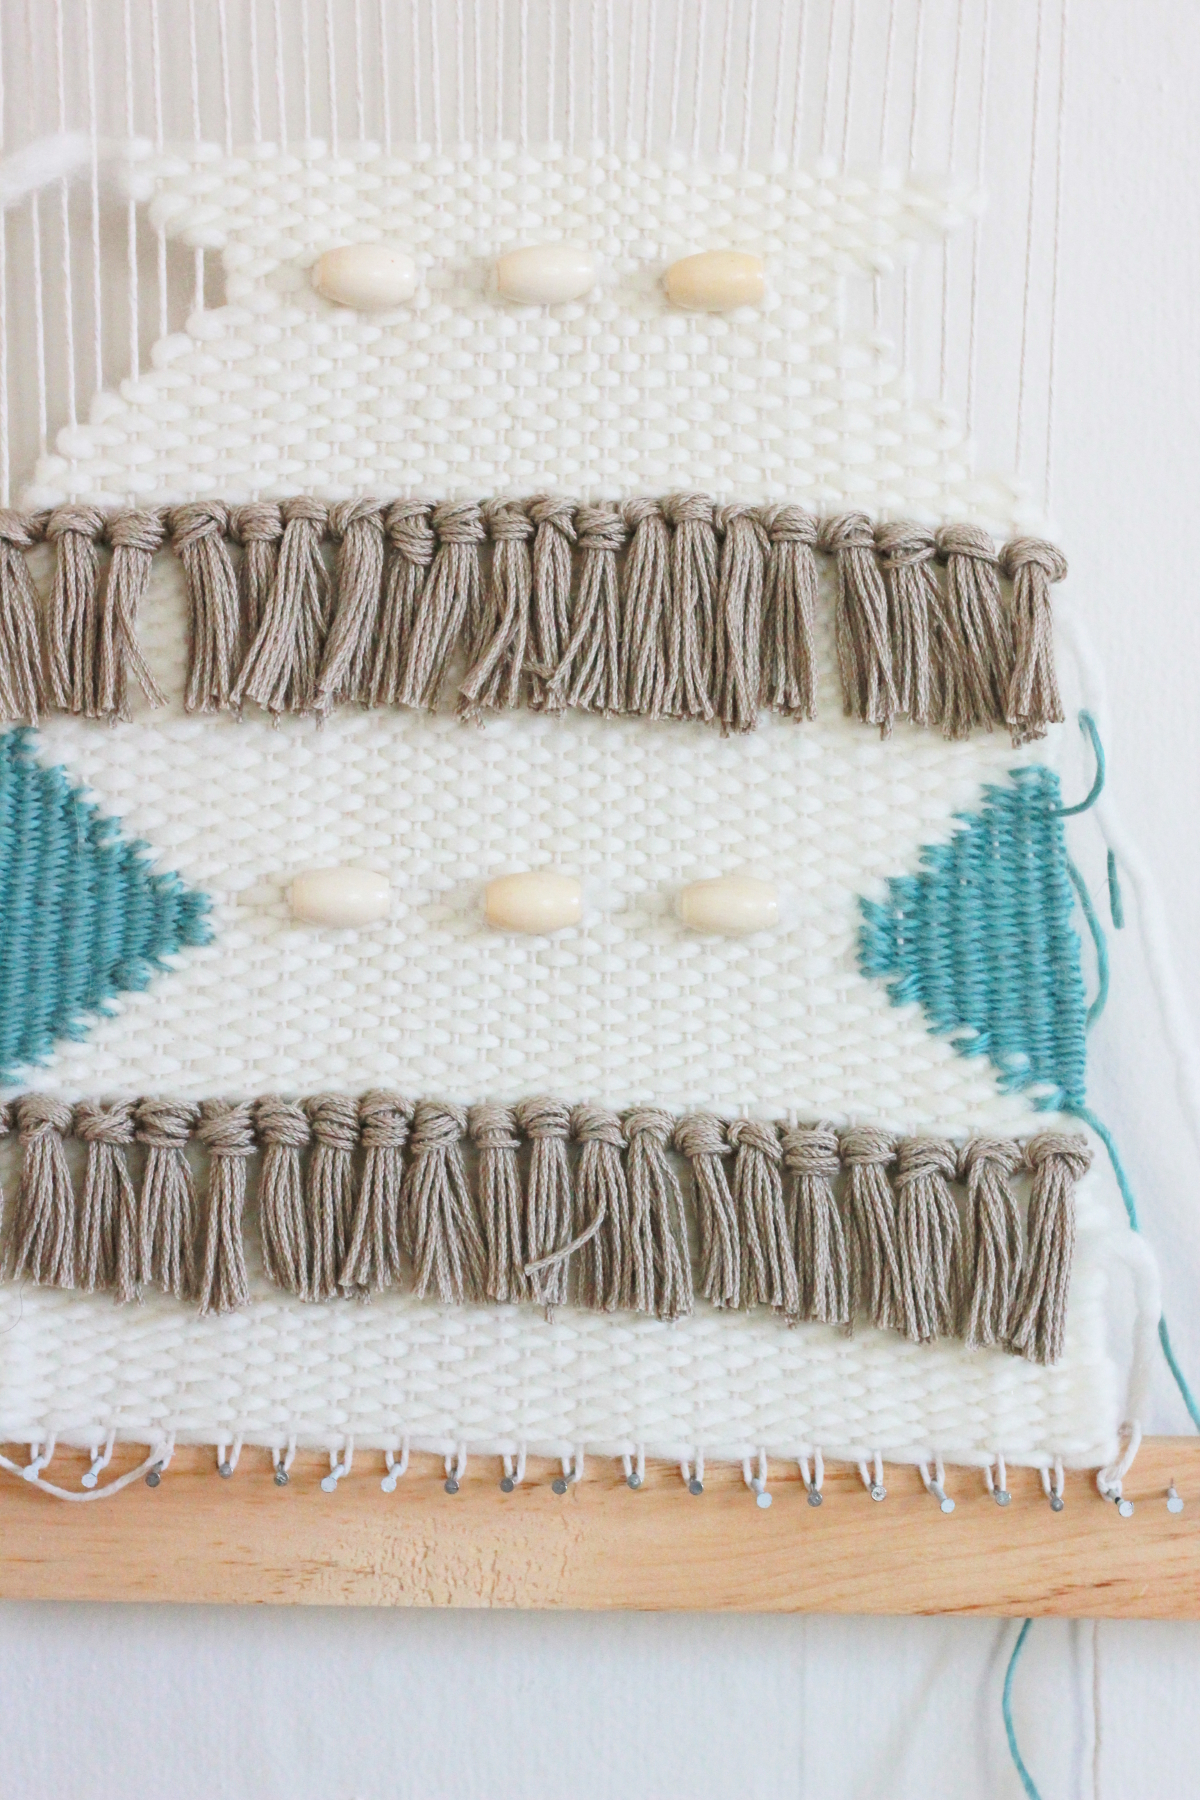 The Making of a Weaving